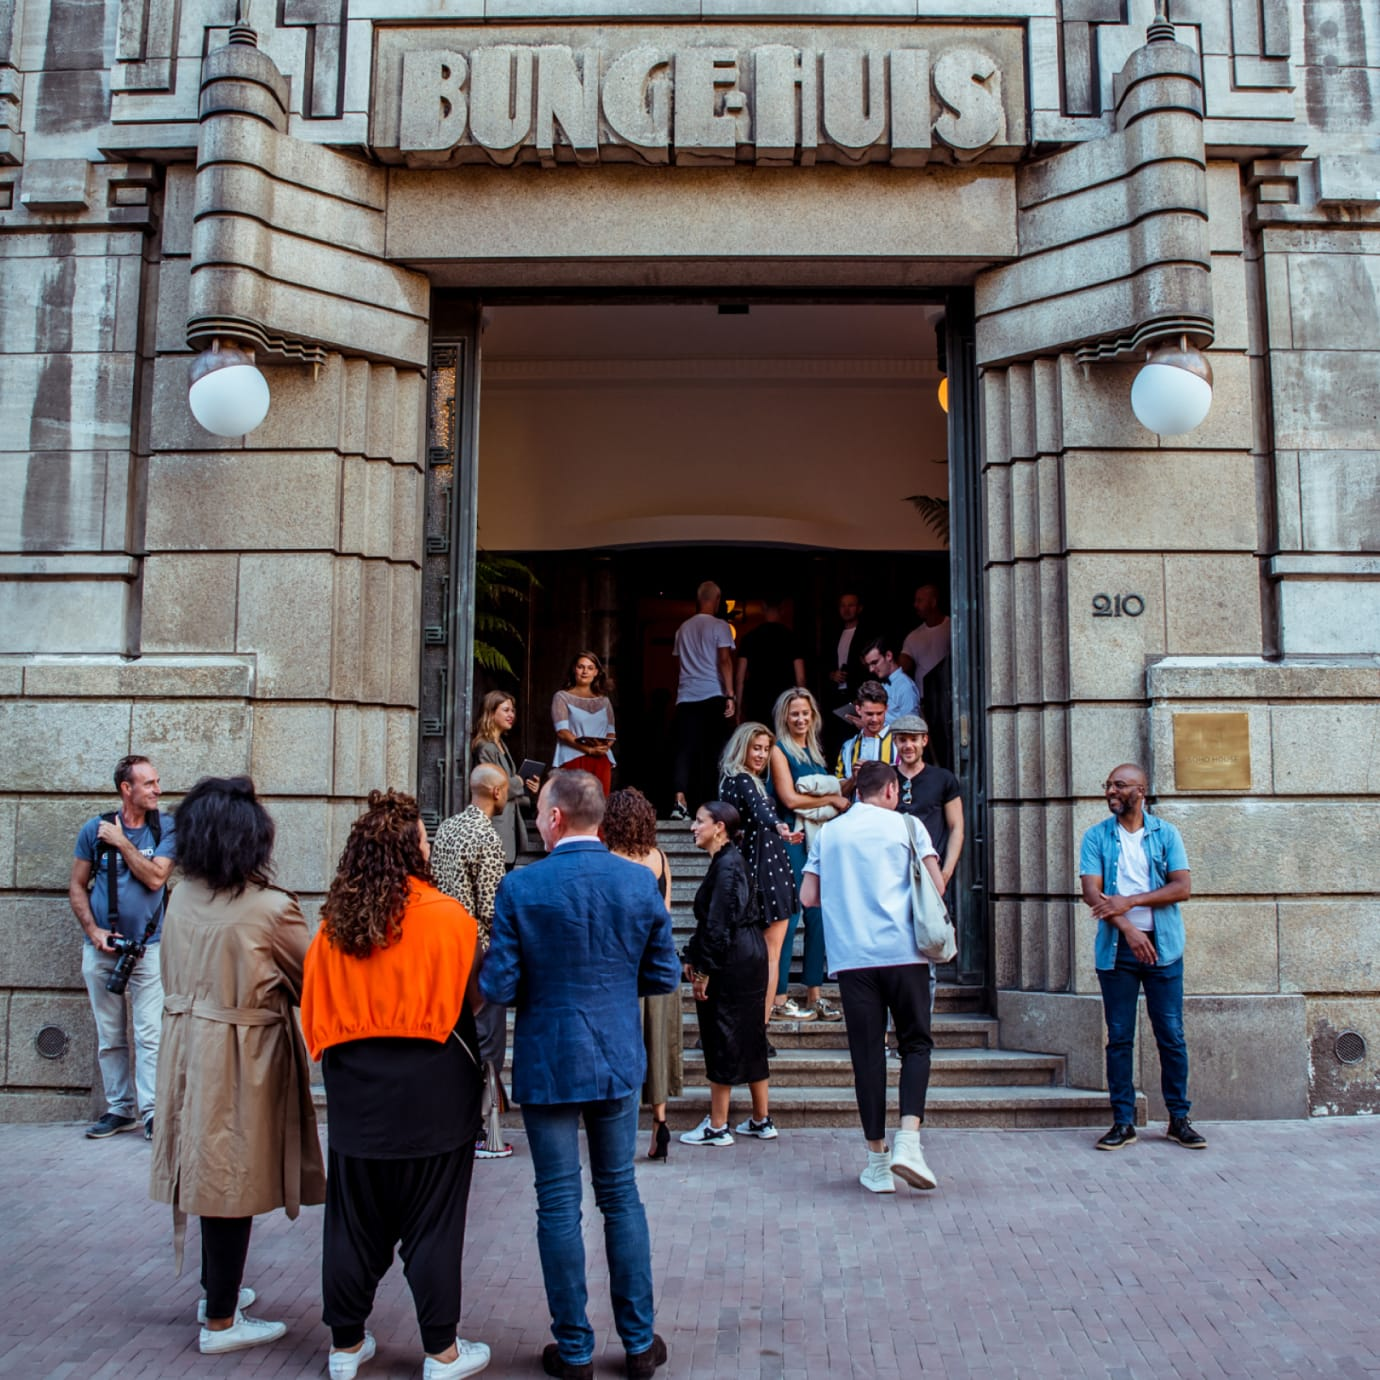 A group of people standing outside the entrance to a concrete building with Bungehuis written on it.